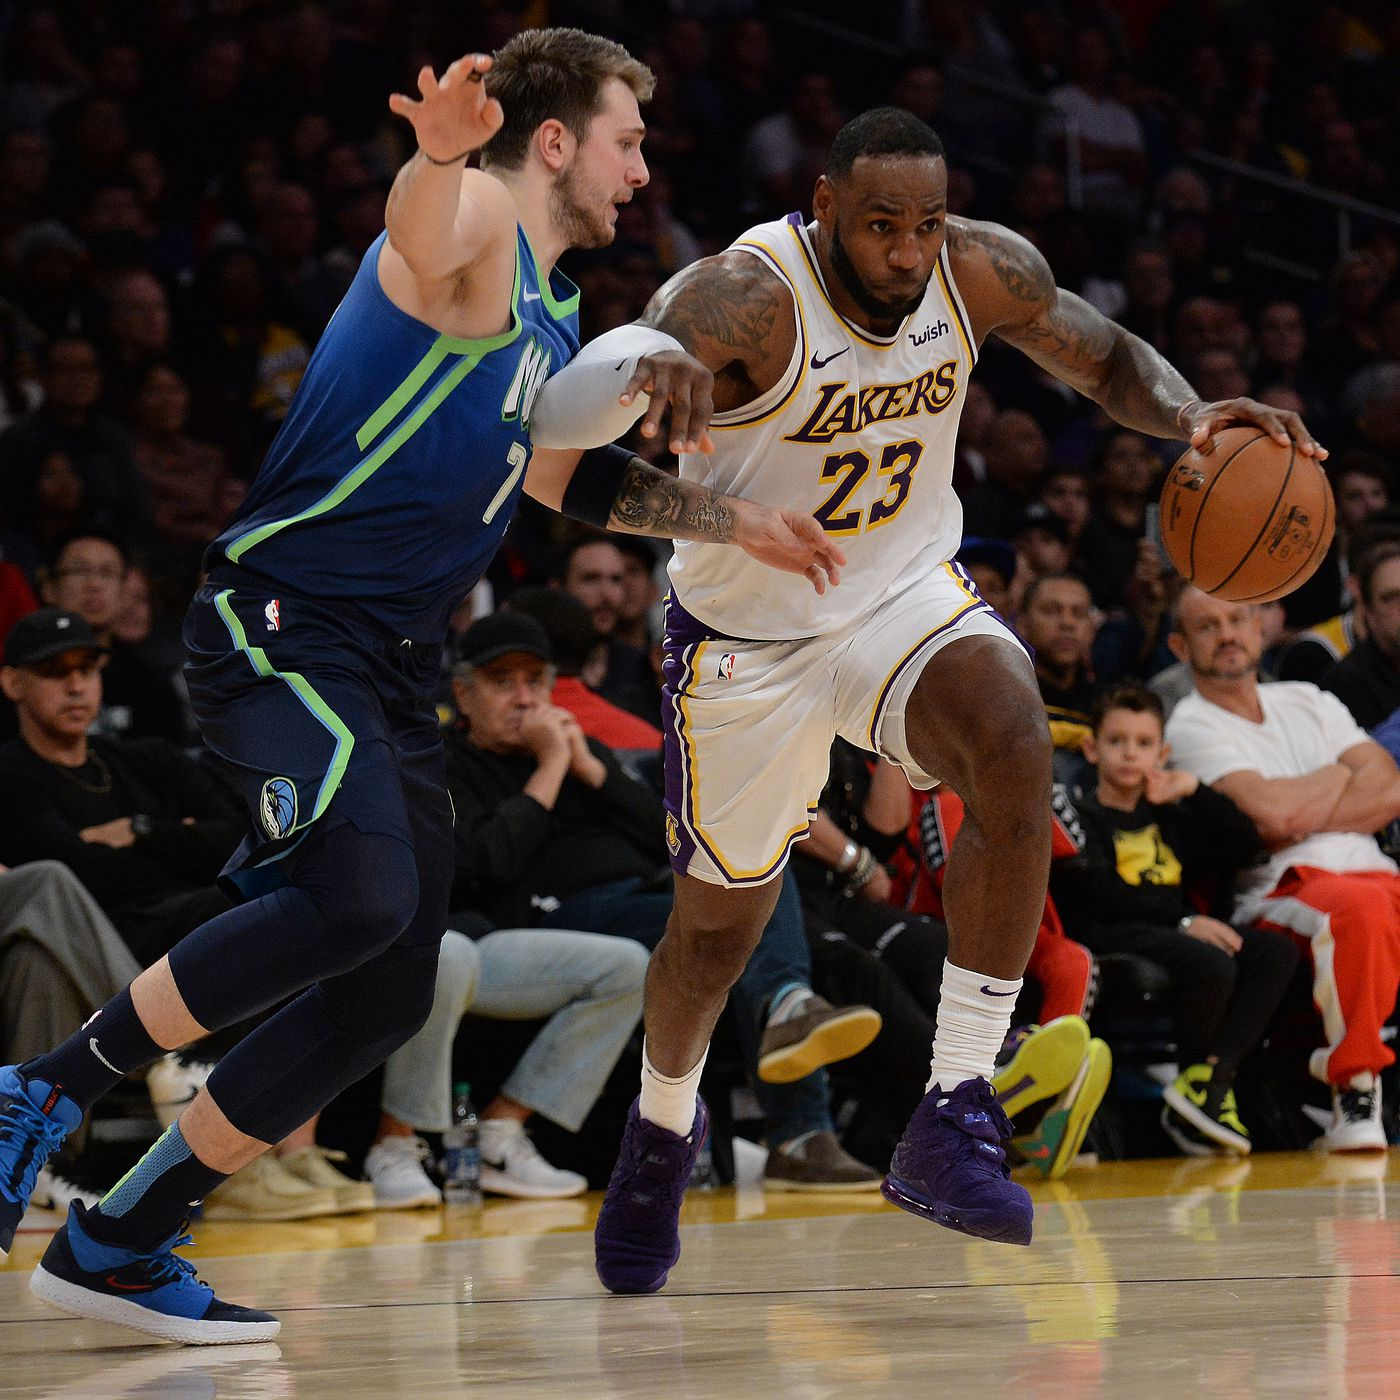 3 Things To Watch For When The Mavericks Take On The Lakers